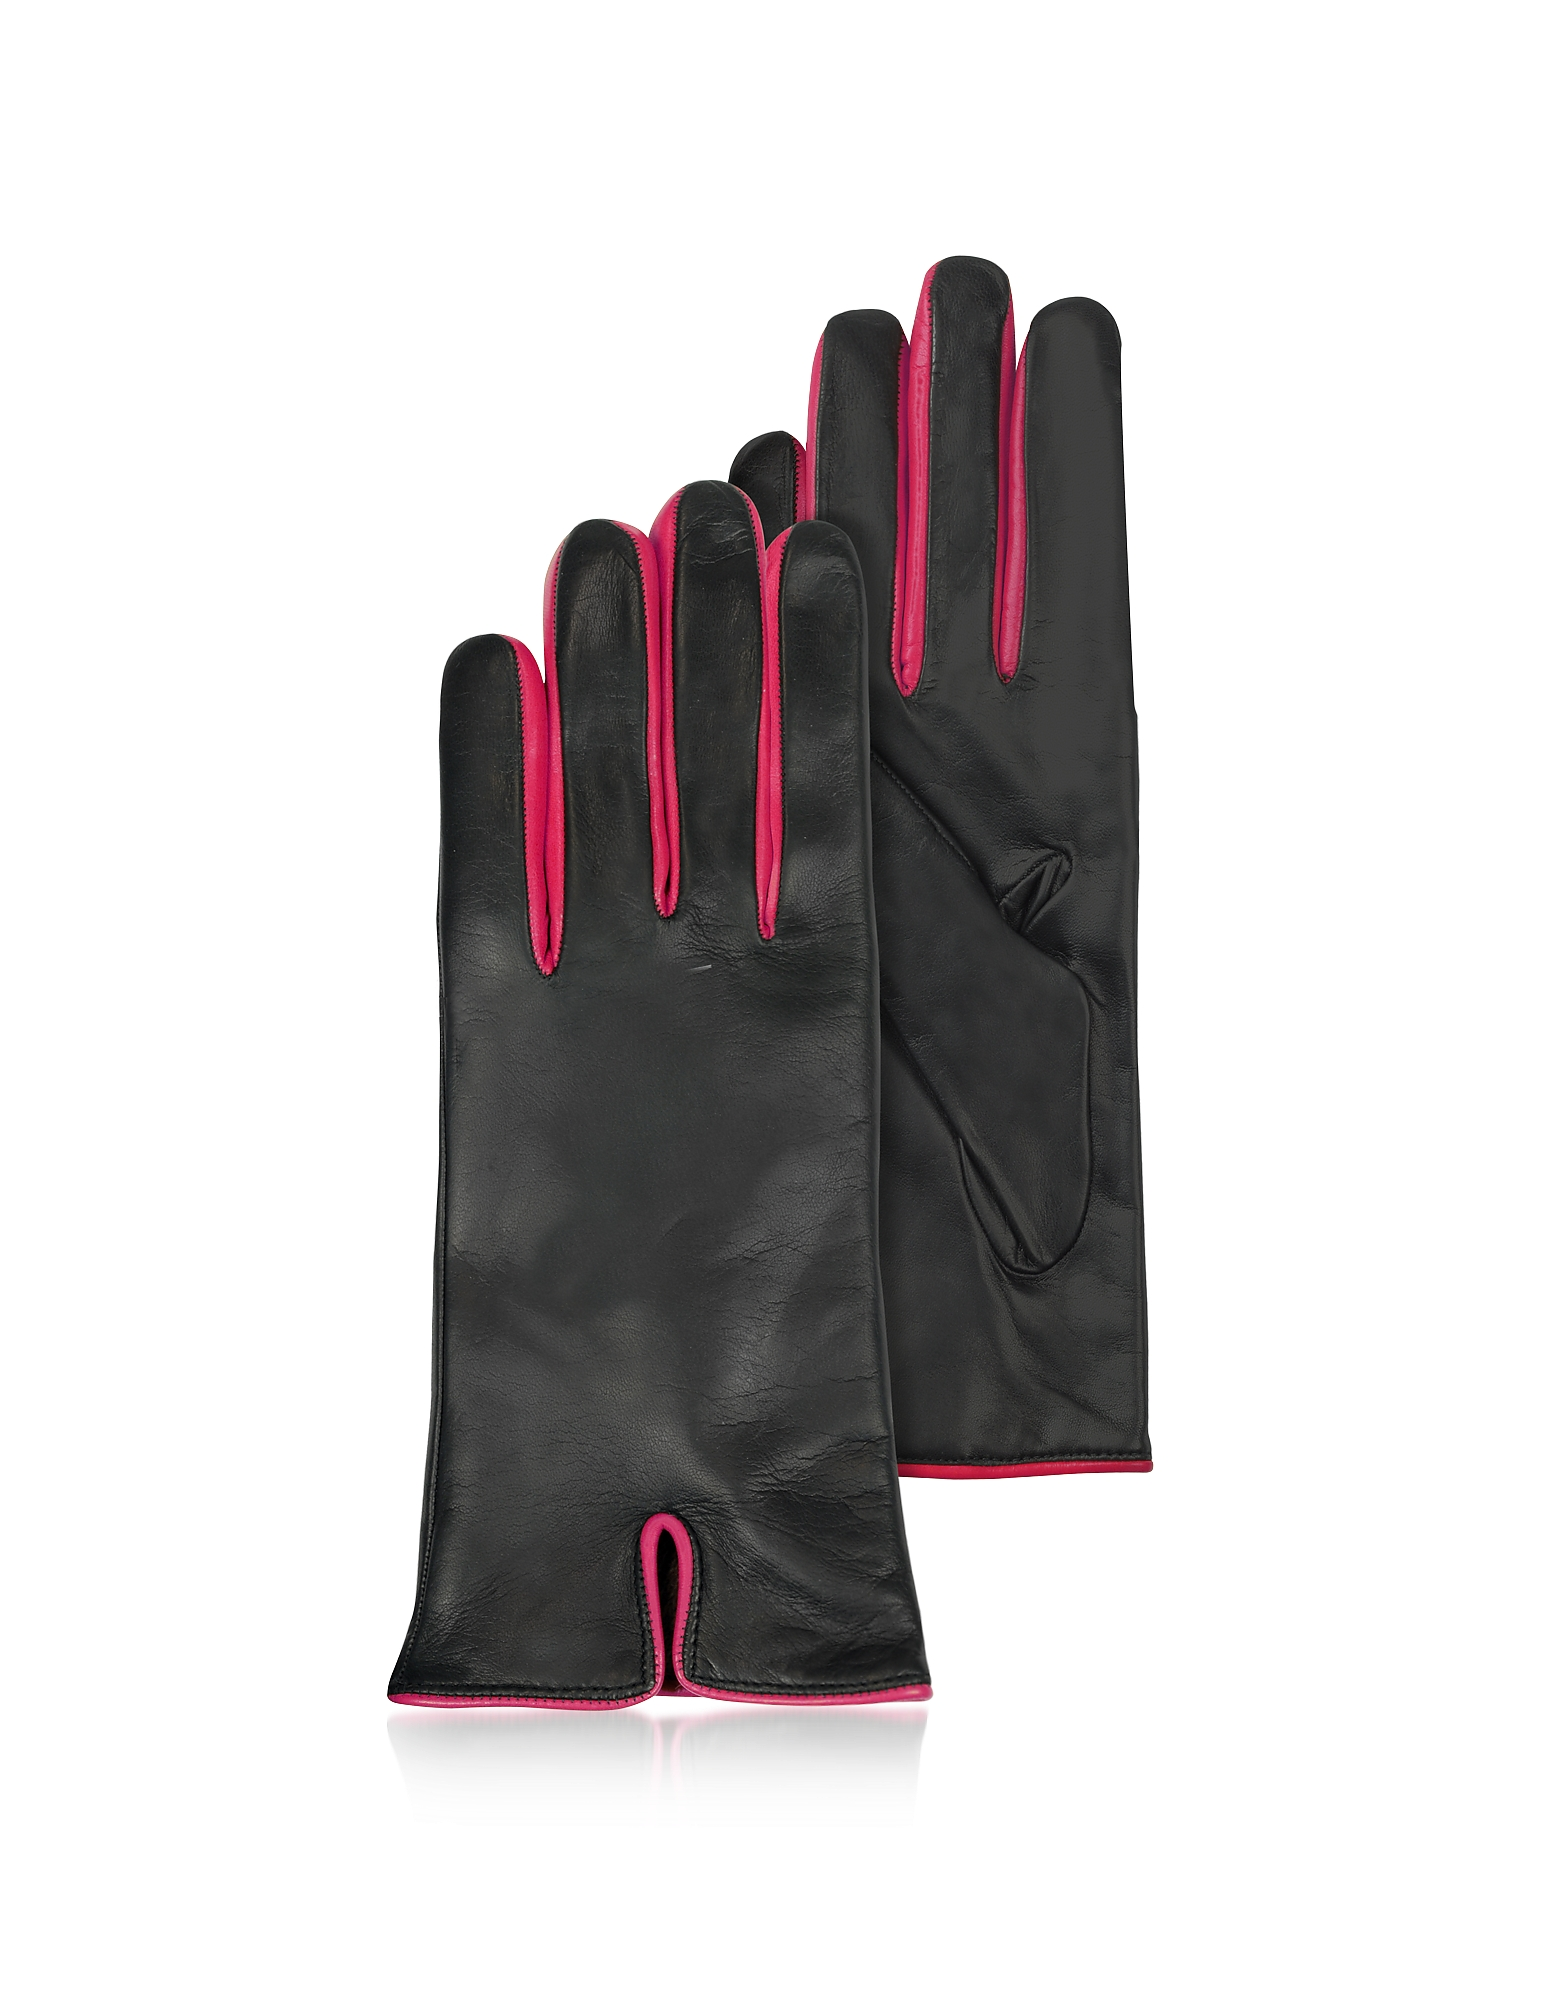 Forzieri Women's Gloves, Black & Fuchsia Cashmere Lined Leather Ladies' Gloves